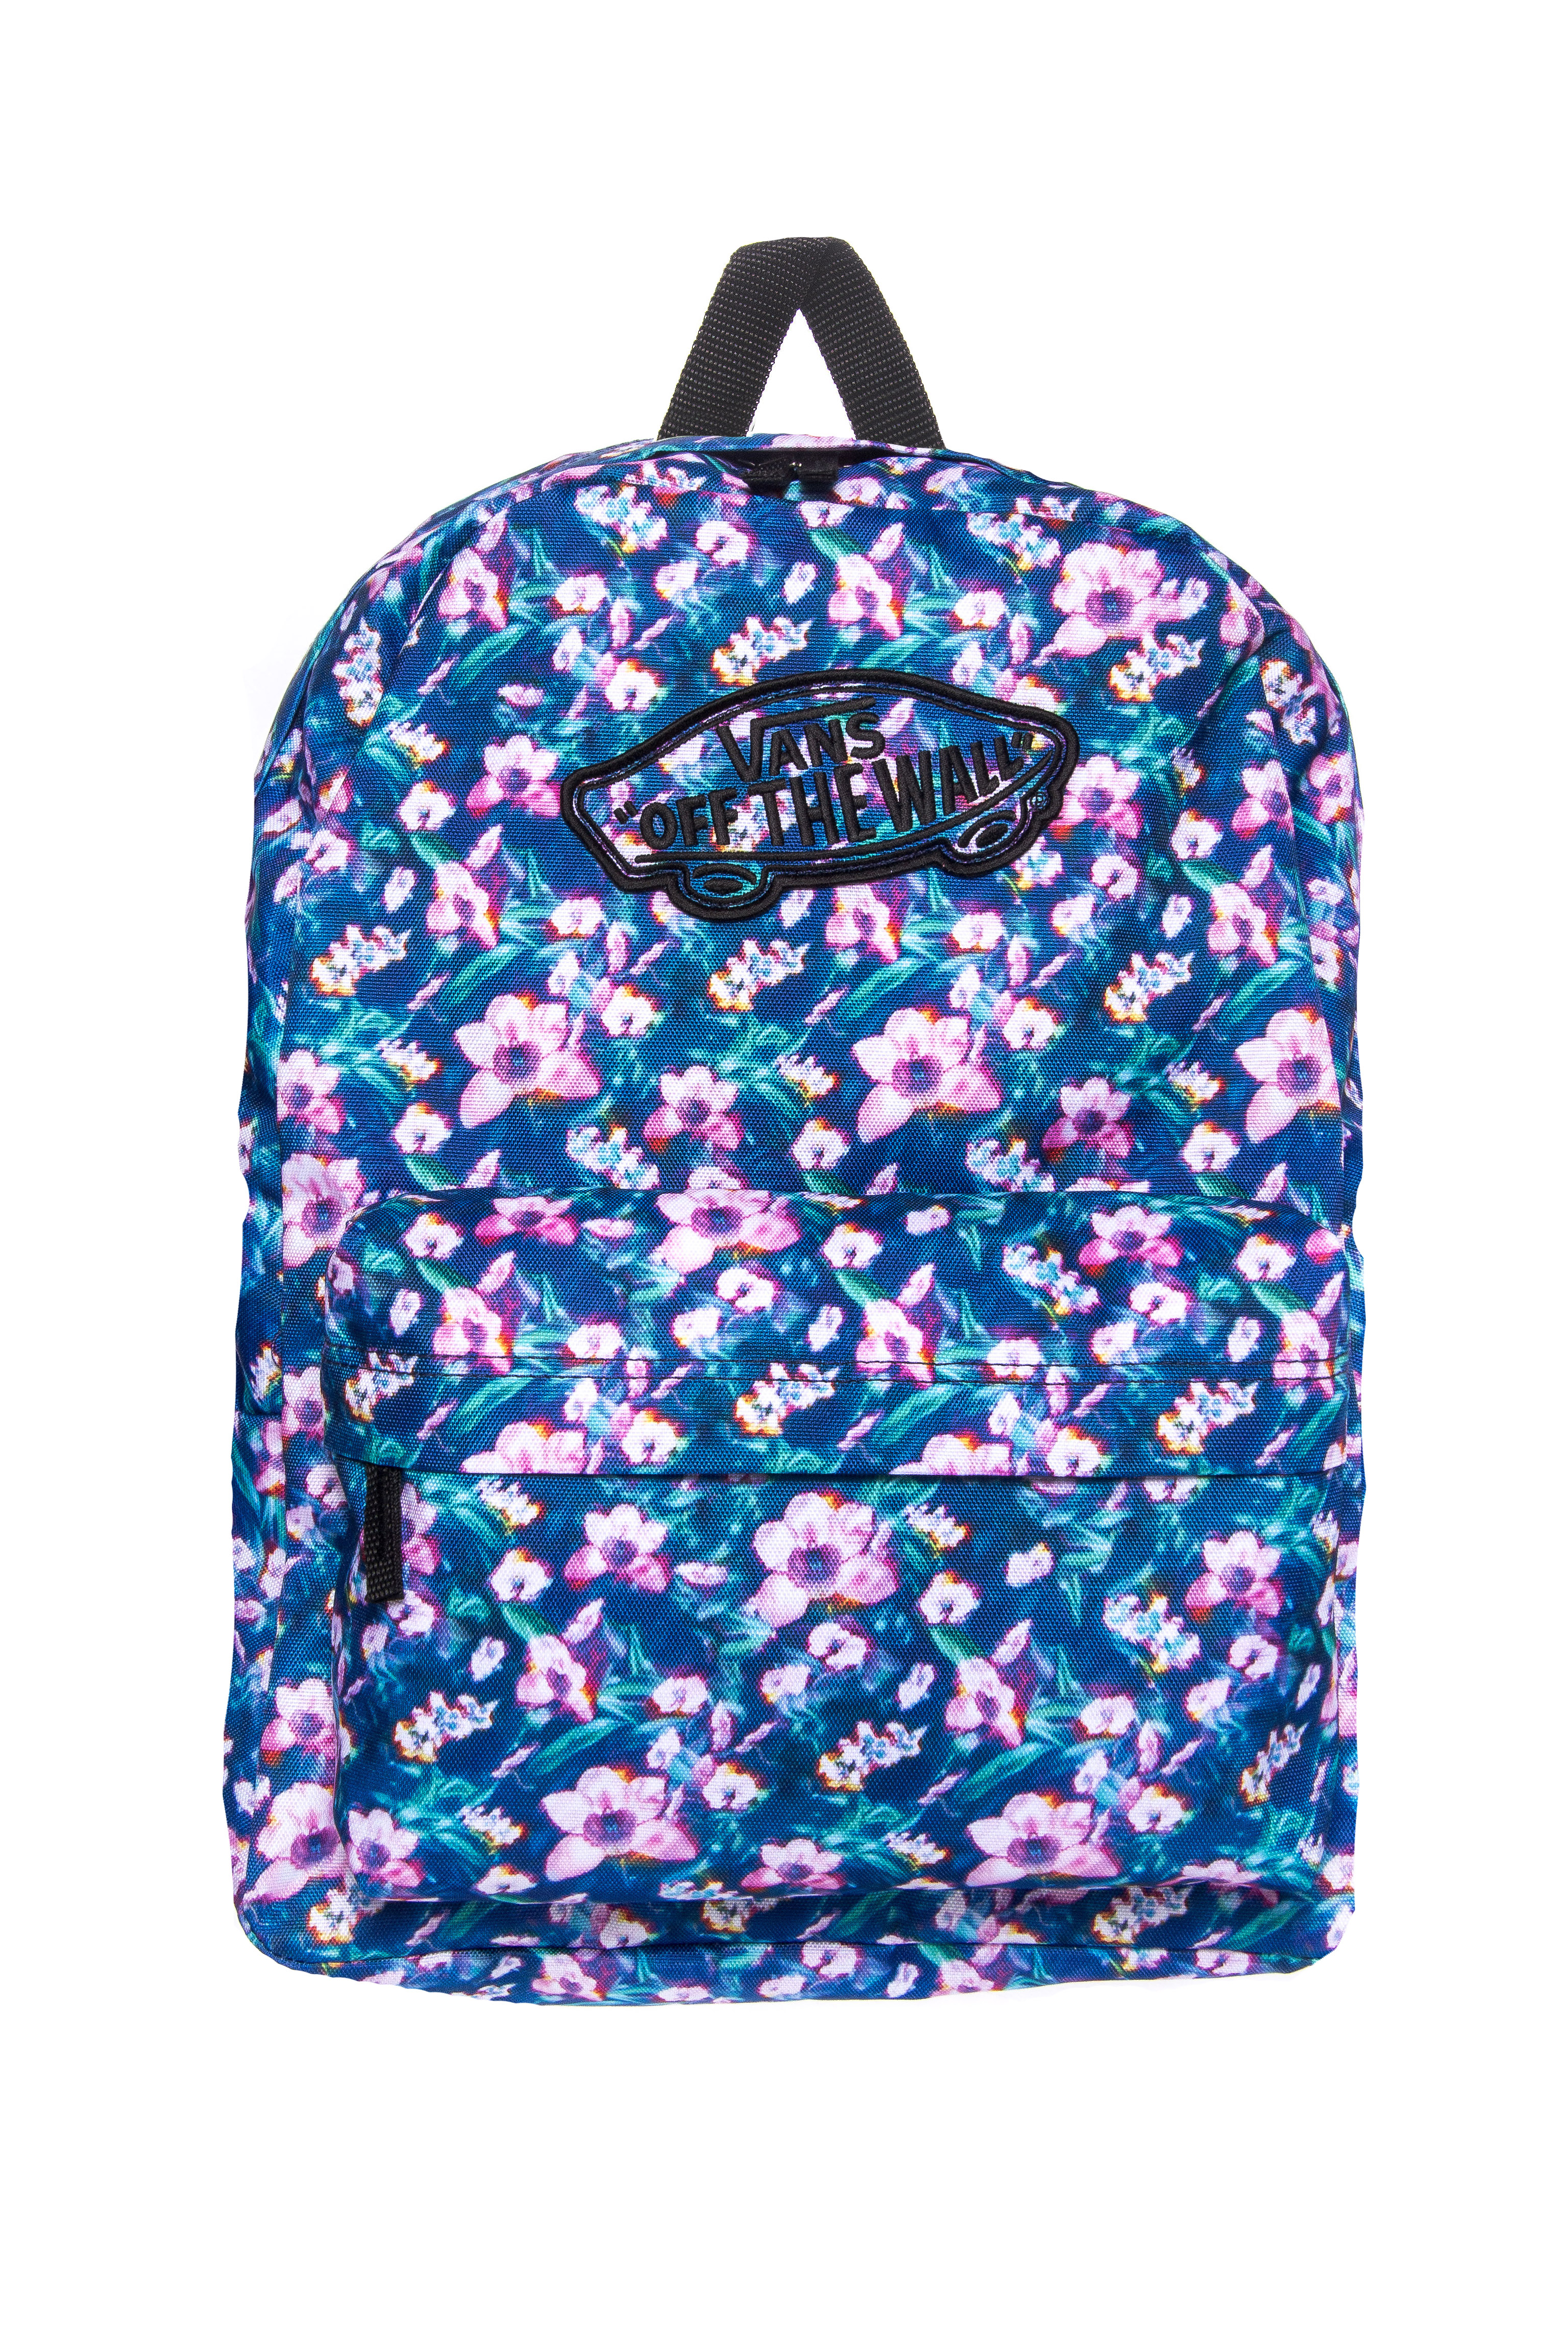 84bc105dc2 UPC 706420191006. ZOOM. UPC 706420191006 has following Product Name  Variations  Realm Backpack  Vans - Realm Backpack ((Blurred Floral) Poseidon  True White) ...